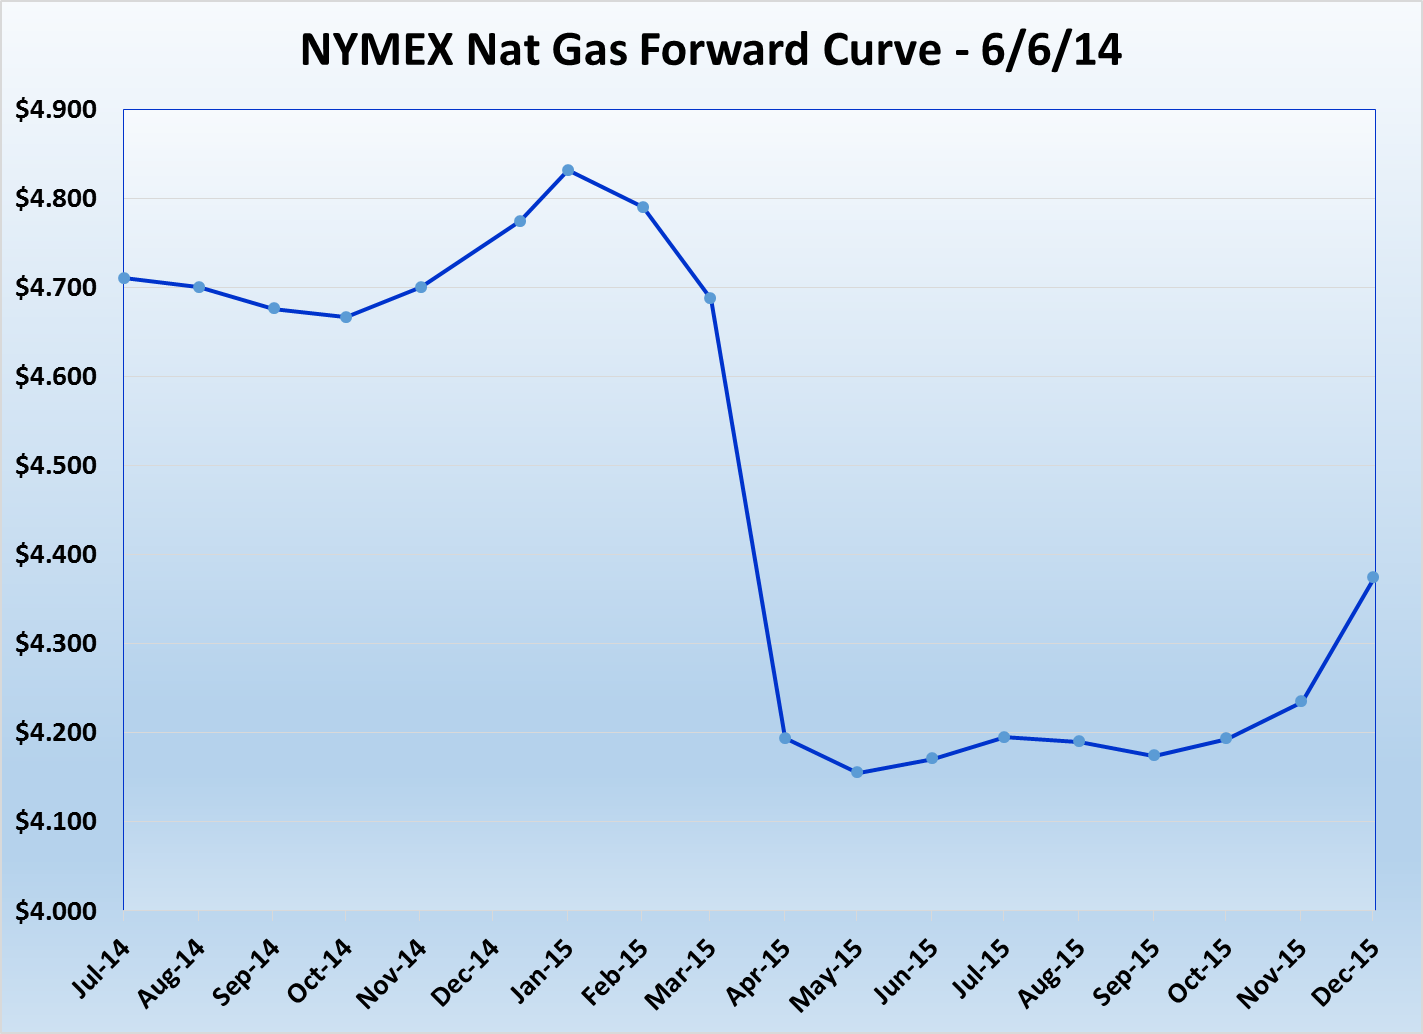 Source: NYMEX Natural Gas Data on 6/6/2014